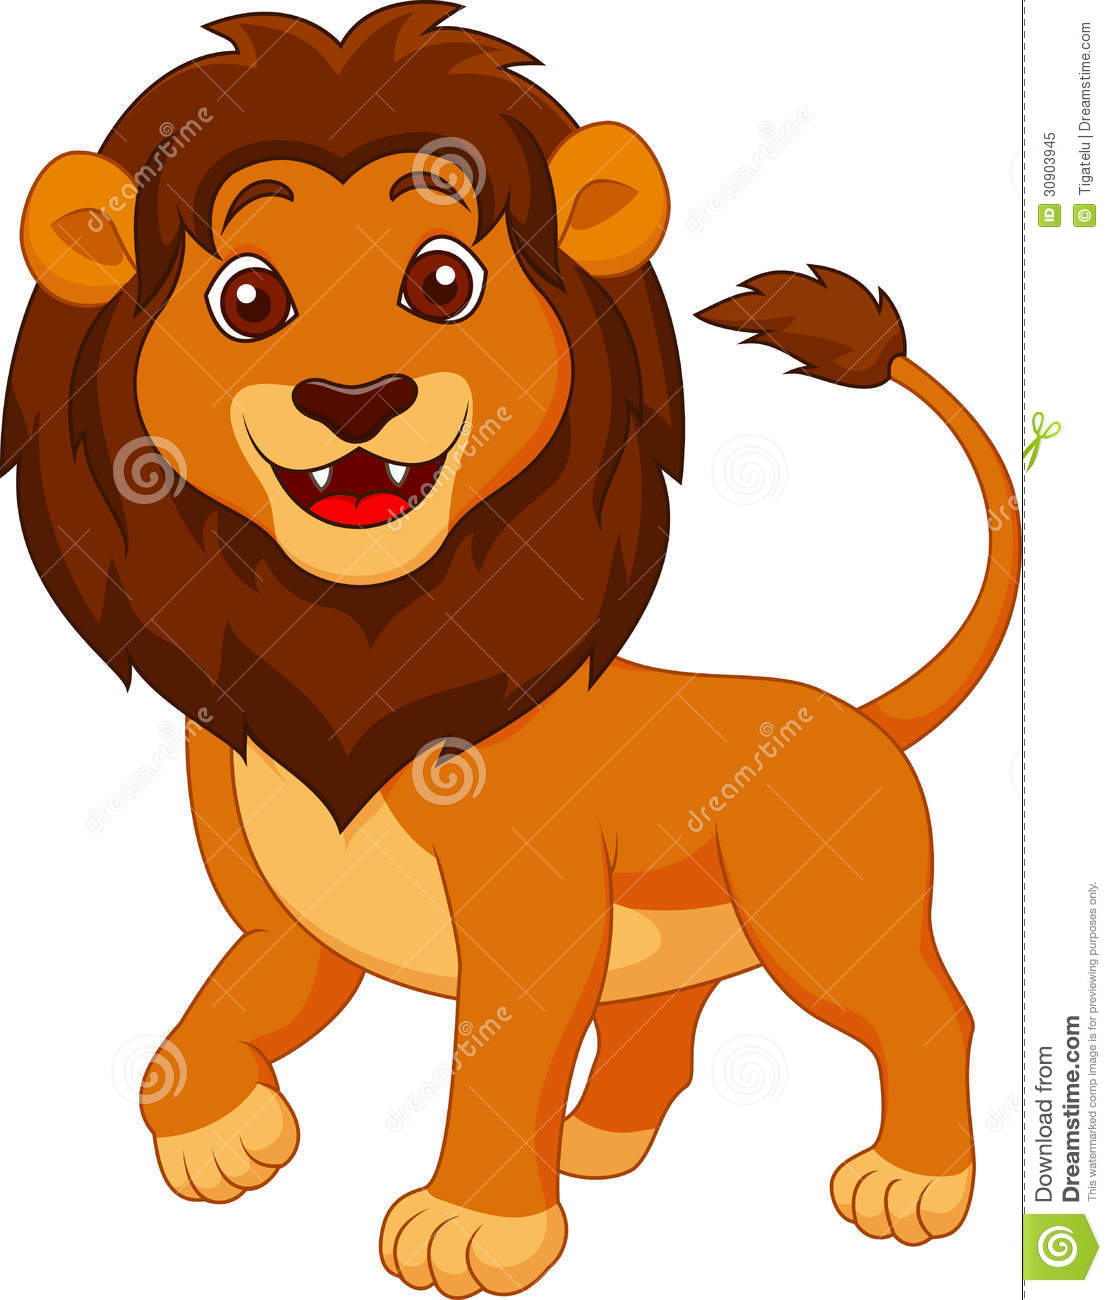 Cute Lion Cartoon Royalty Free Stock Photo Image 30903945